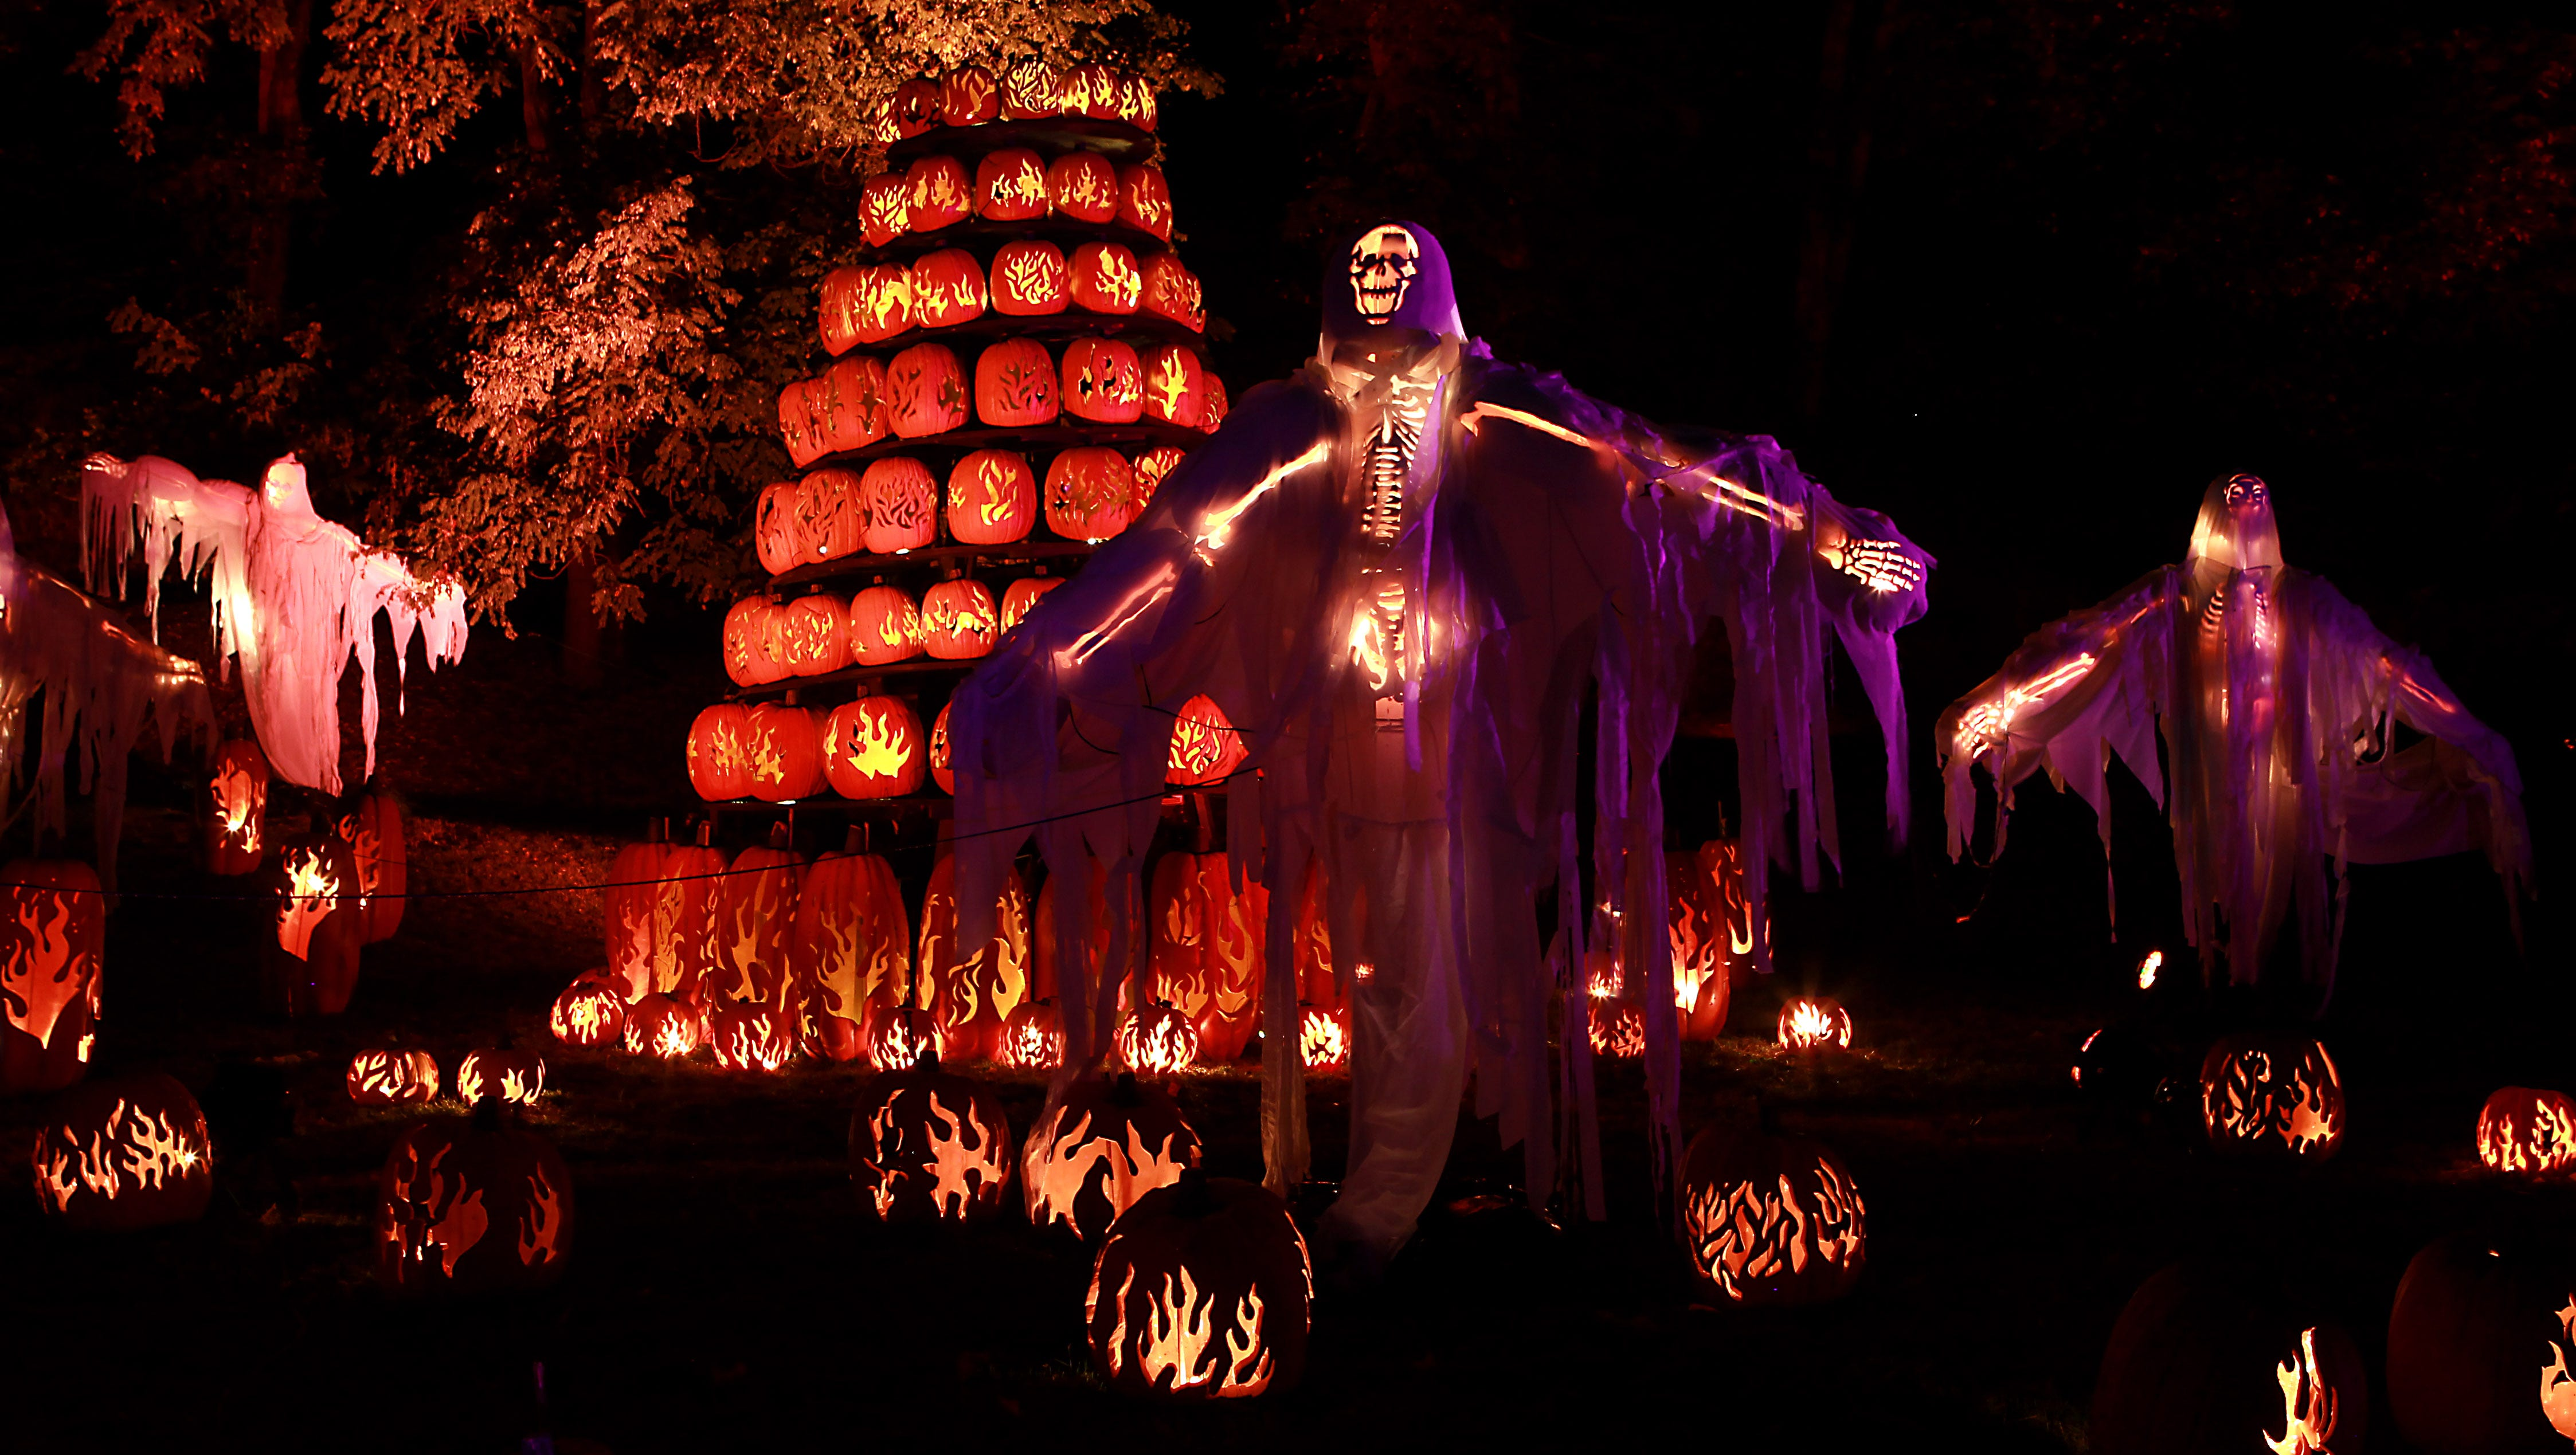 Halloween 2020 Changes West Chester Halloween 2020: Get tickets for this year's Blaze, Six Flags